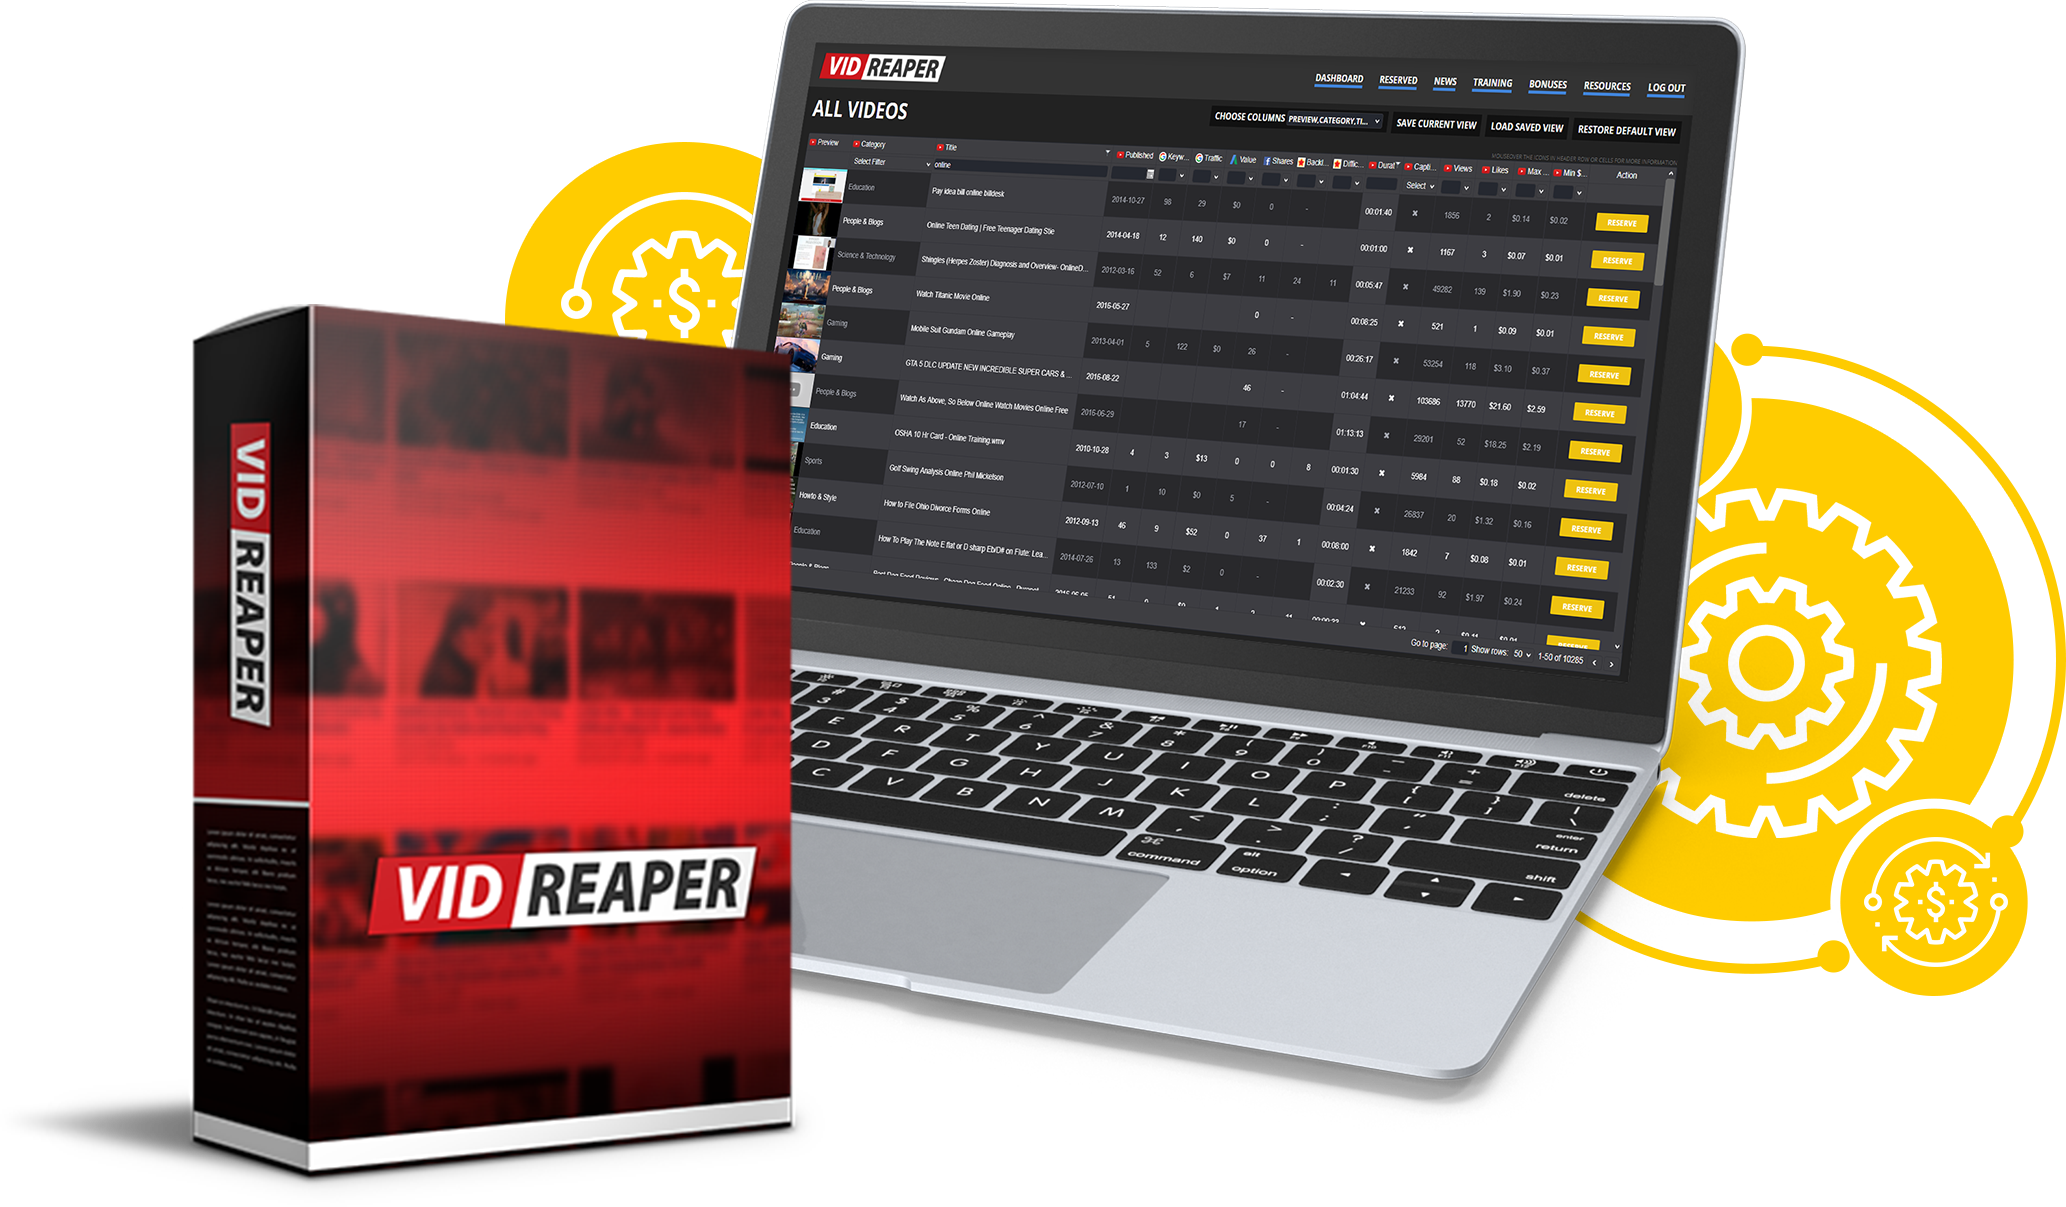 Vid Reaper Pro Lifetime License Reveiw – SHOULD YOU GET IT? : Revealed! The Video Marketing Missing Link For Passive Income, Fast List Building And Staggering Profits! [Discover How To Actually Make Money With Video Marketing By Matt Garret]